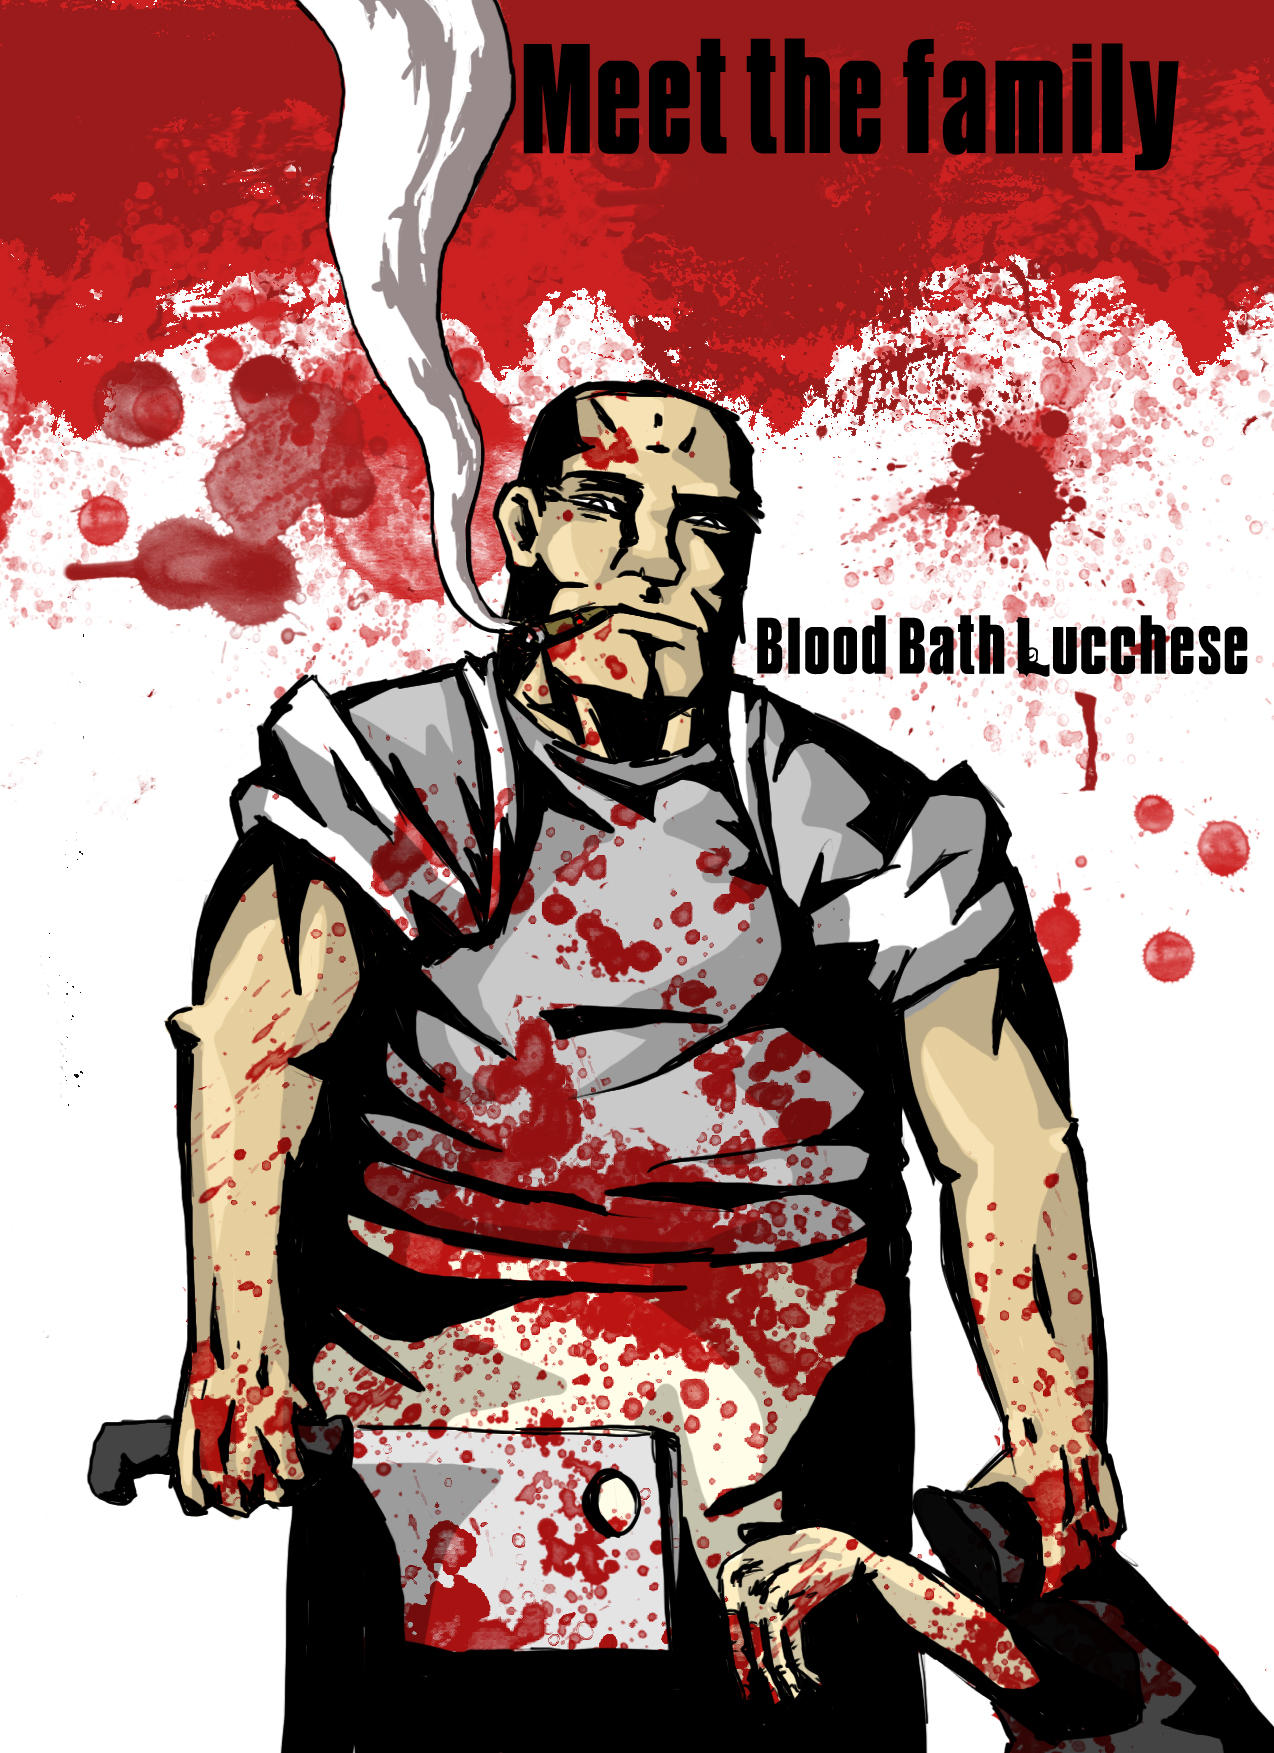 Blood bath Lucchese- mafia by IamINCOGNITO